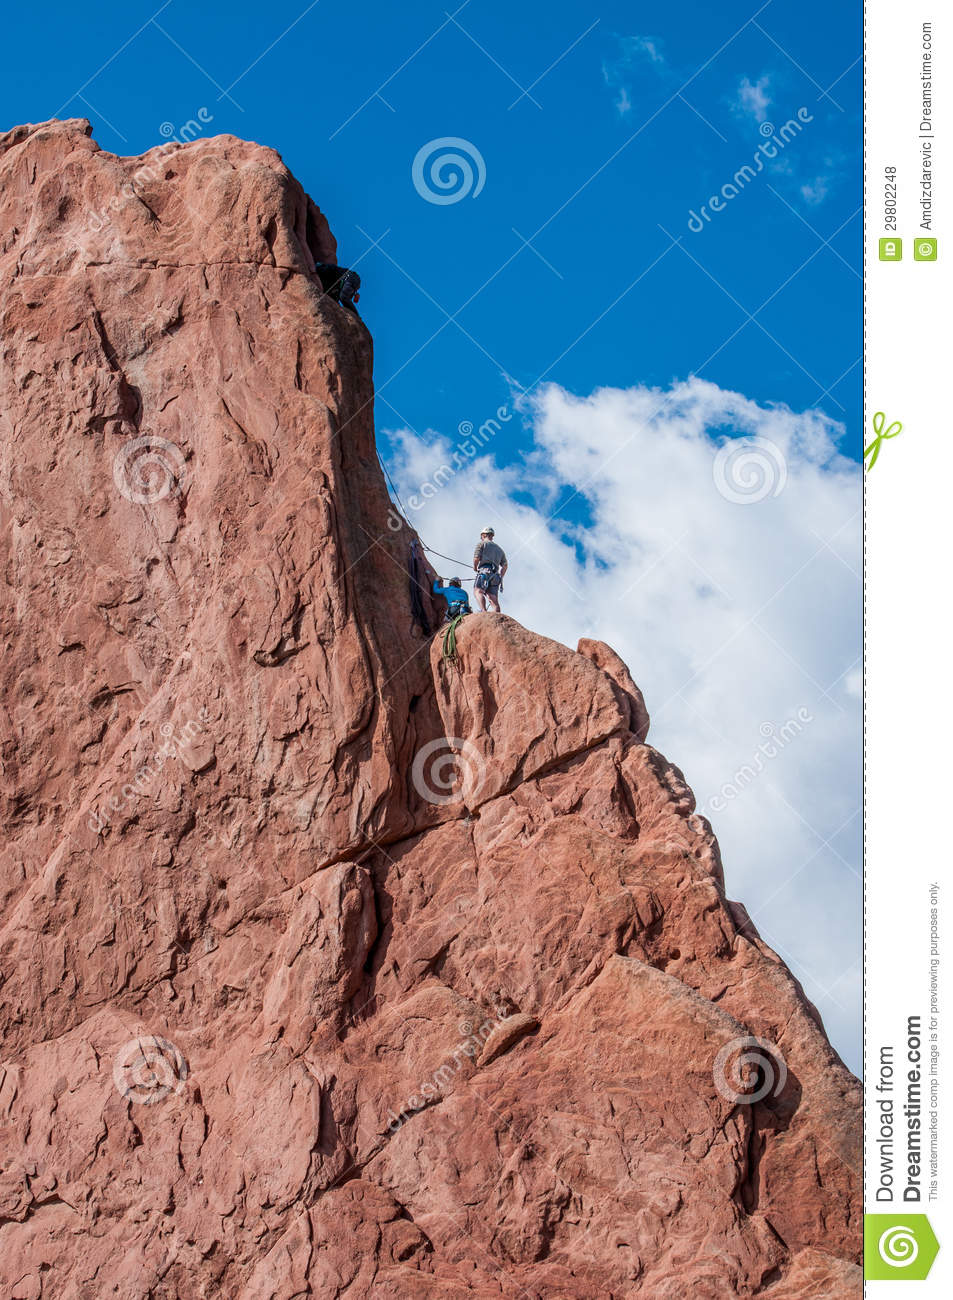 Rock climbing editorial stock photo image 29802248 for Garden of the gods rock climbing